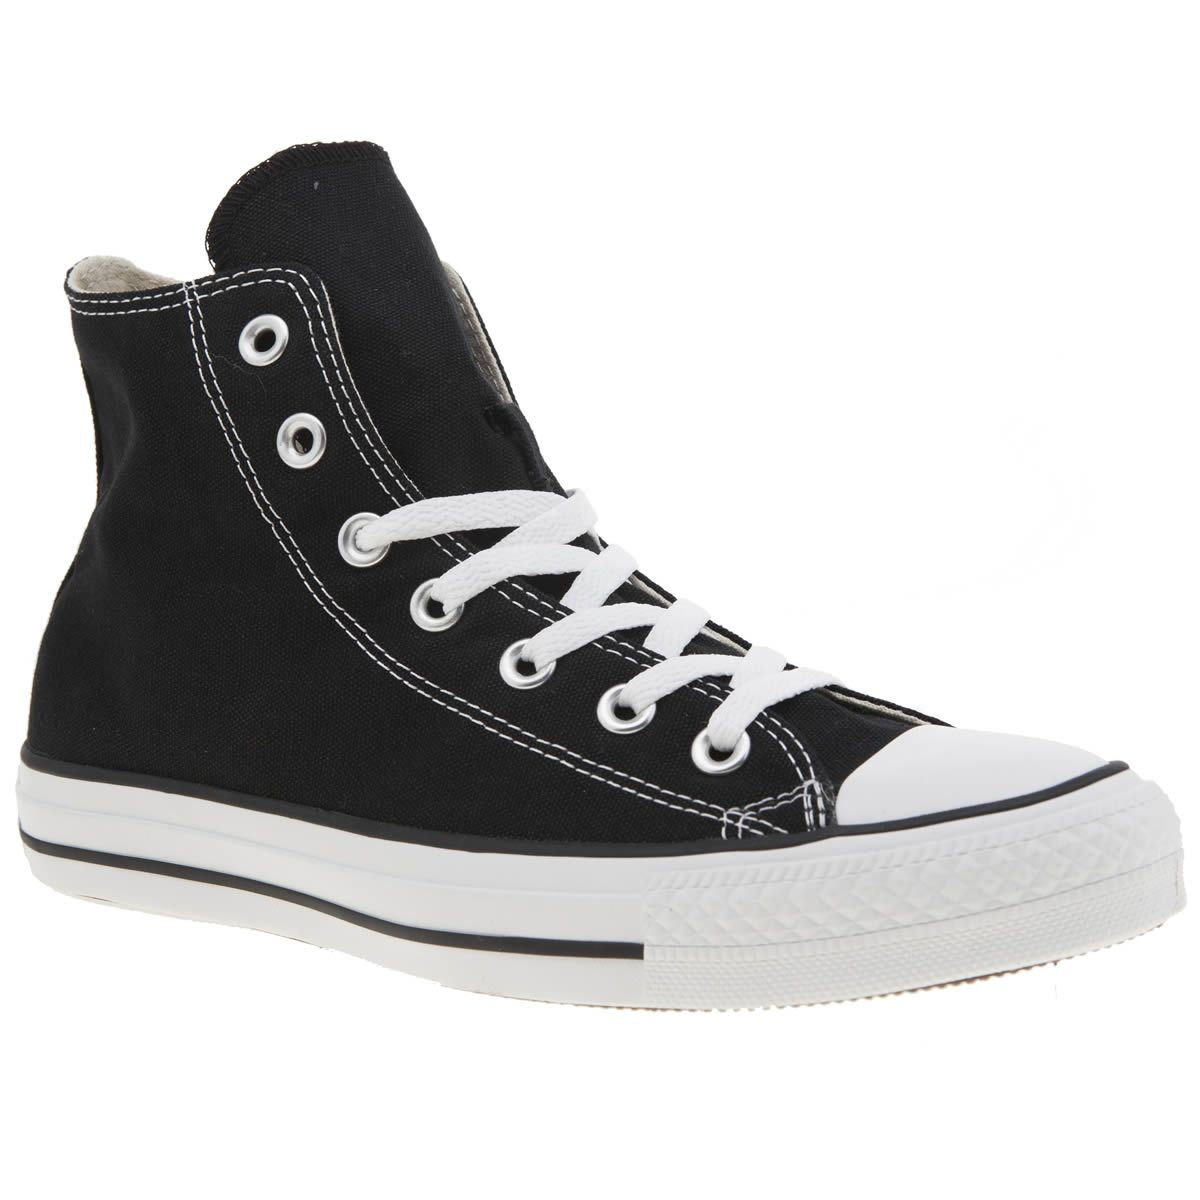 17d362b5e508 Image result for converse trainers